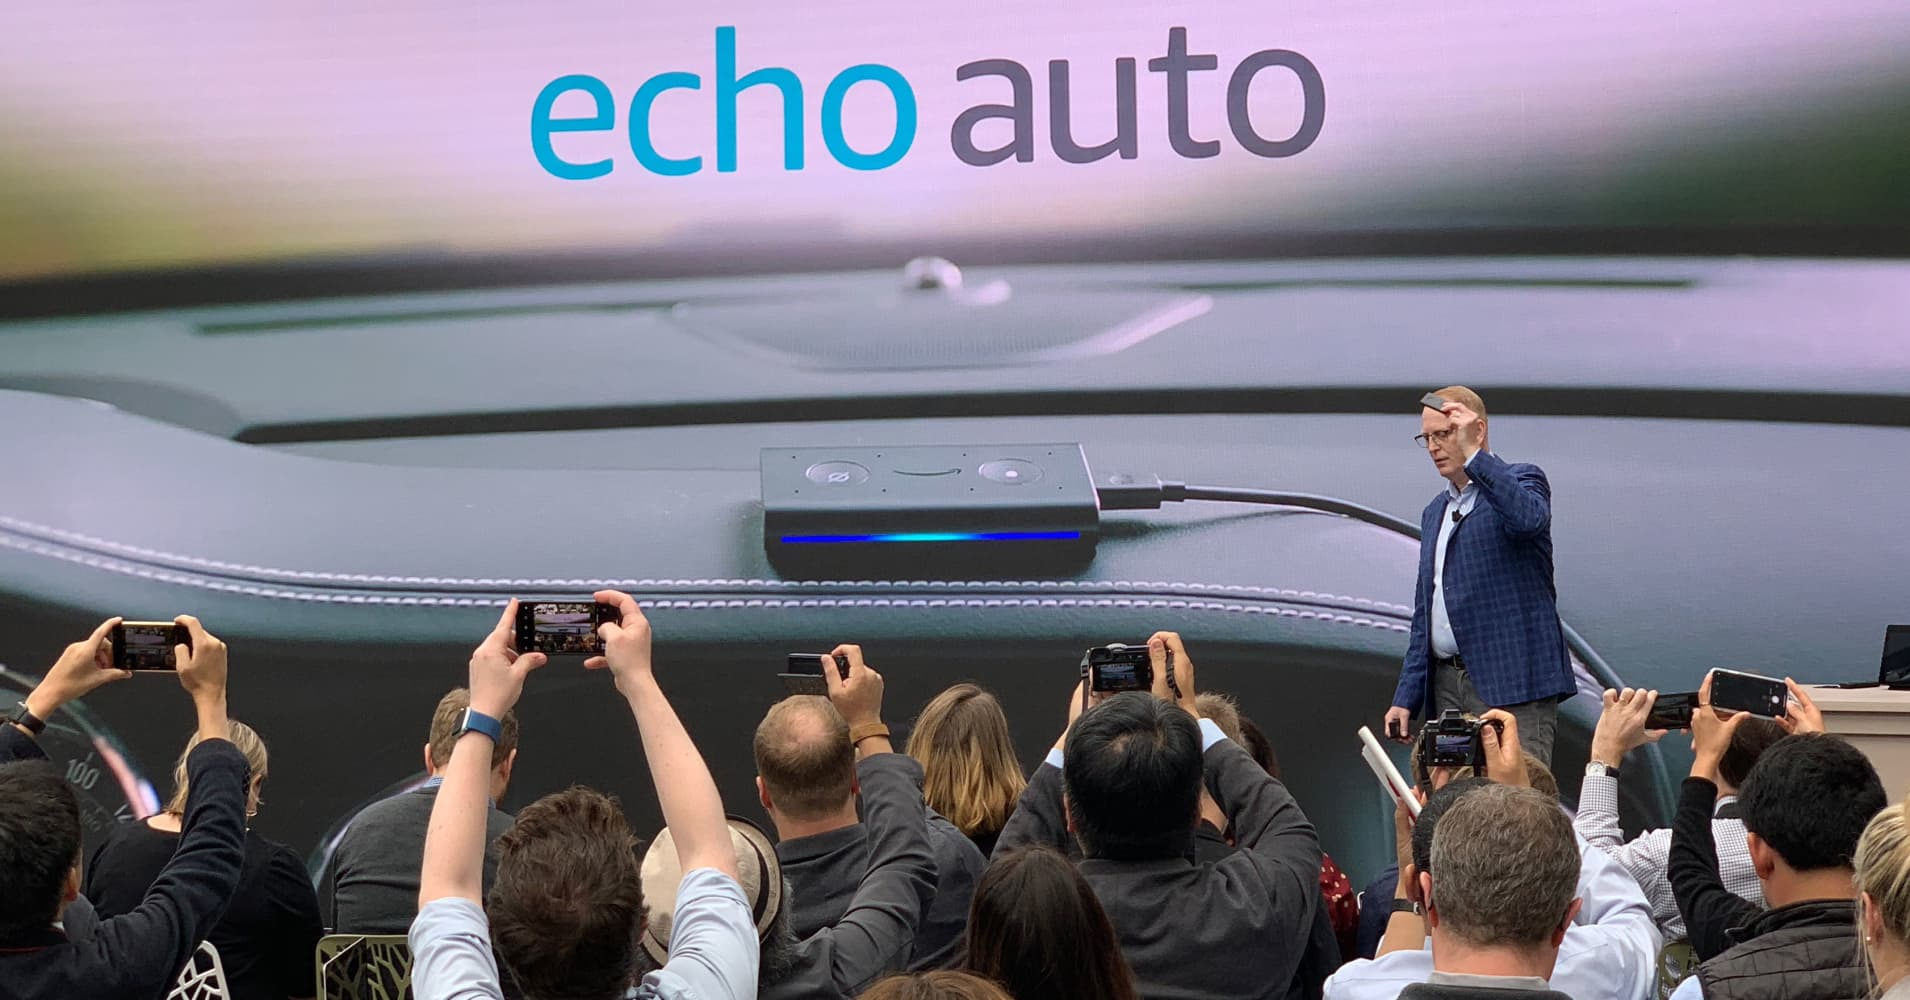 Amazon introduces a ton of new Alexa-enabled products, including a microwave and car gadget